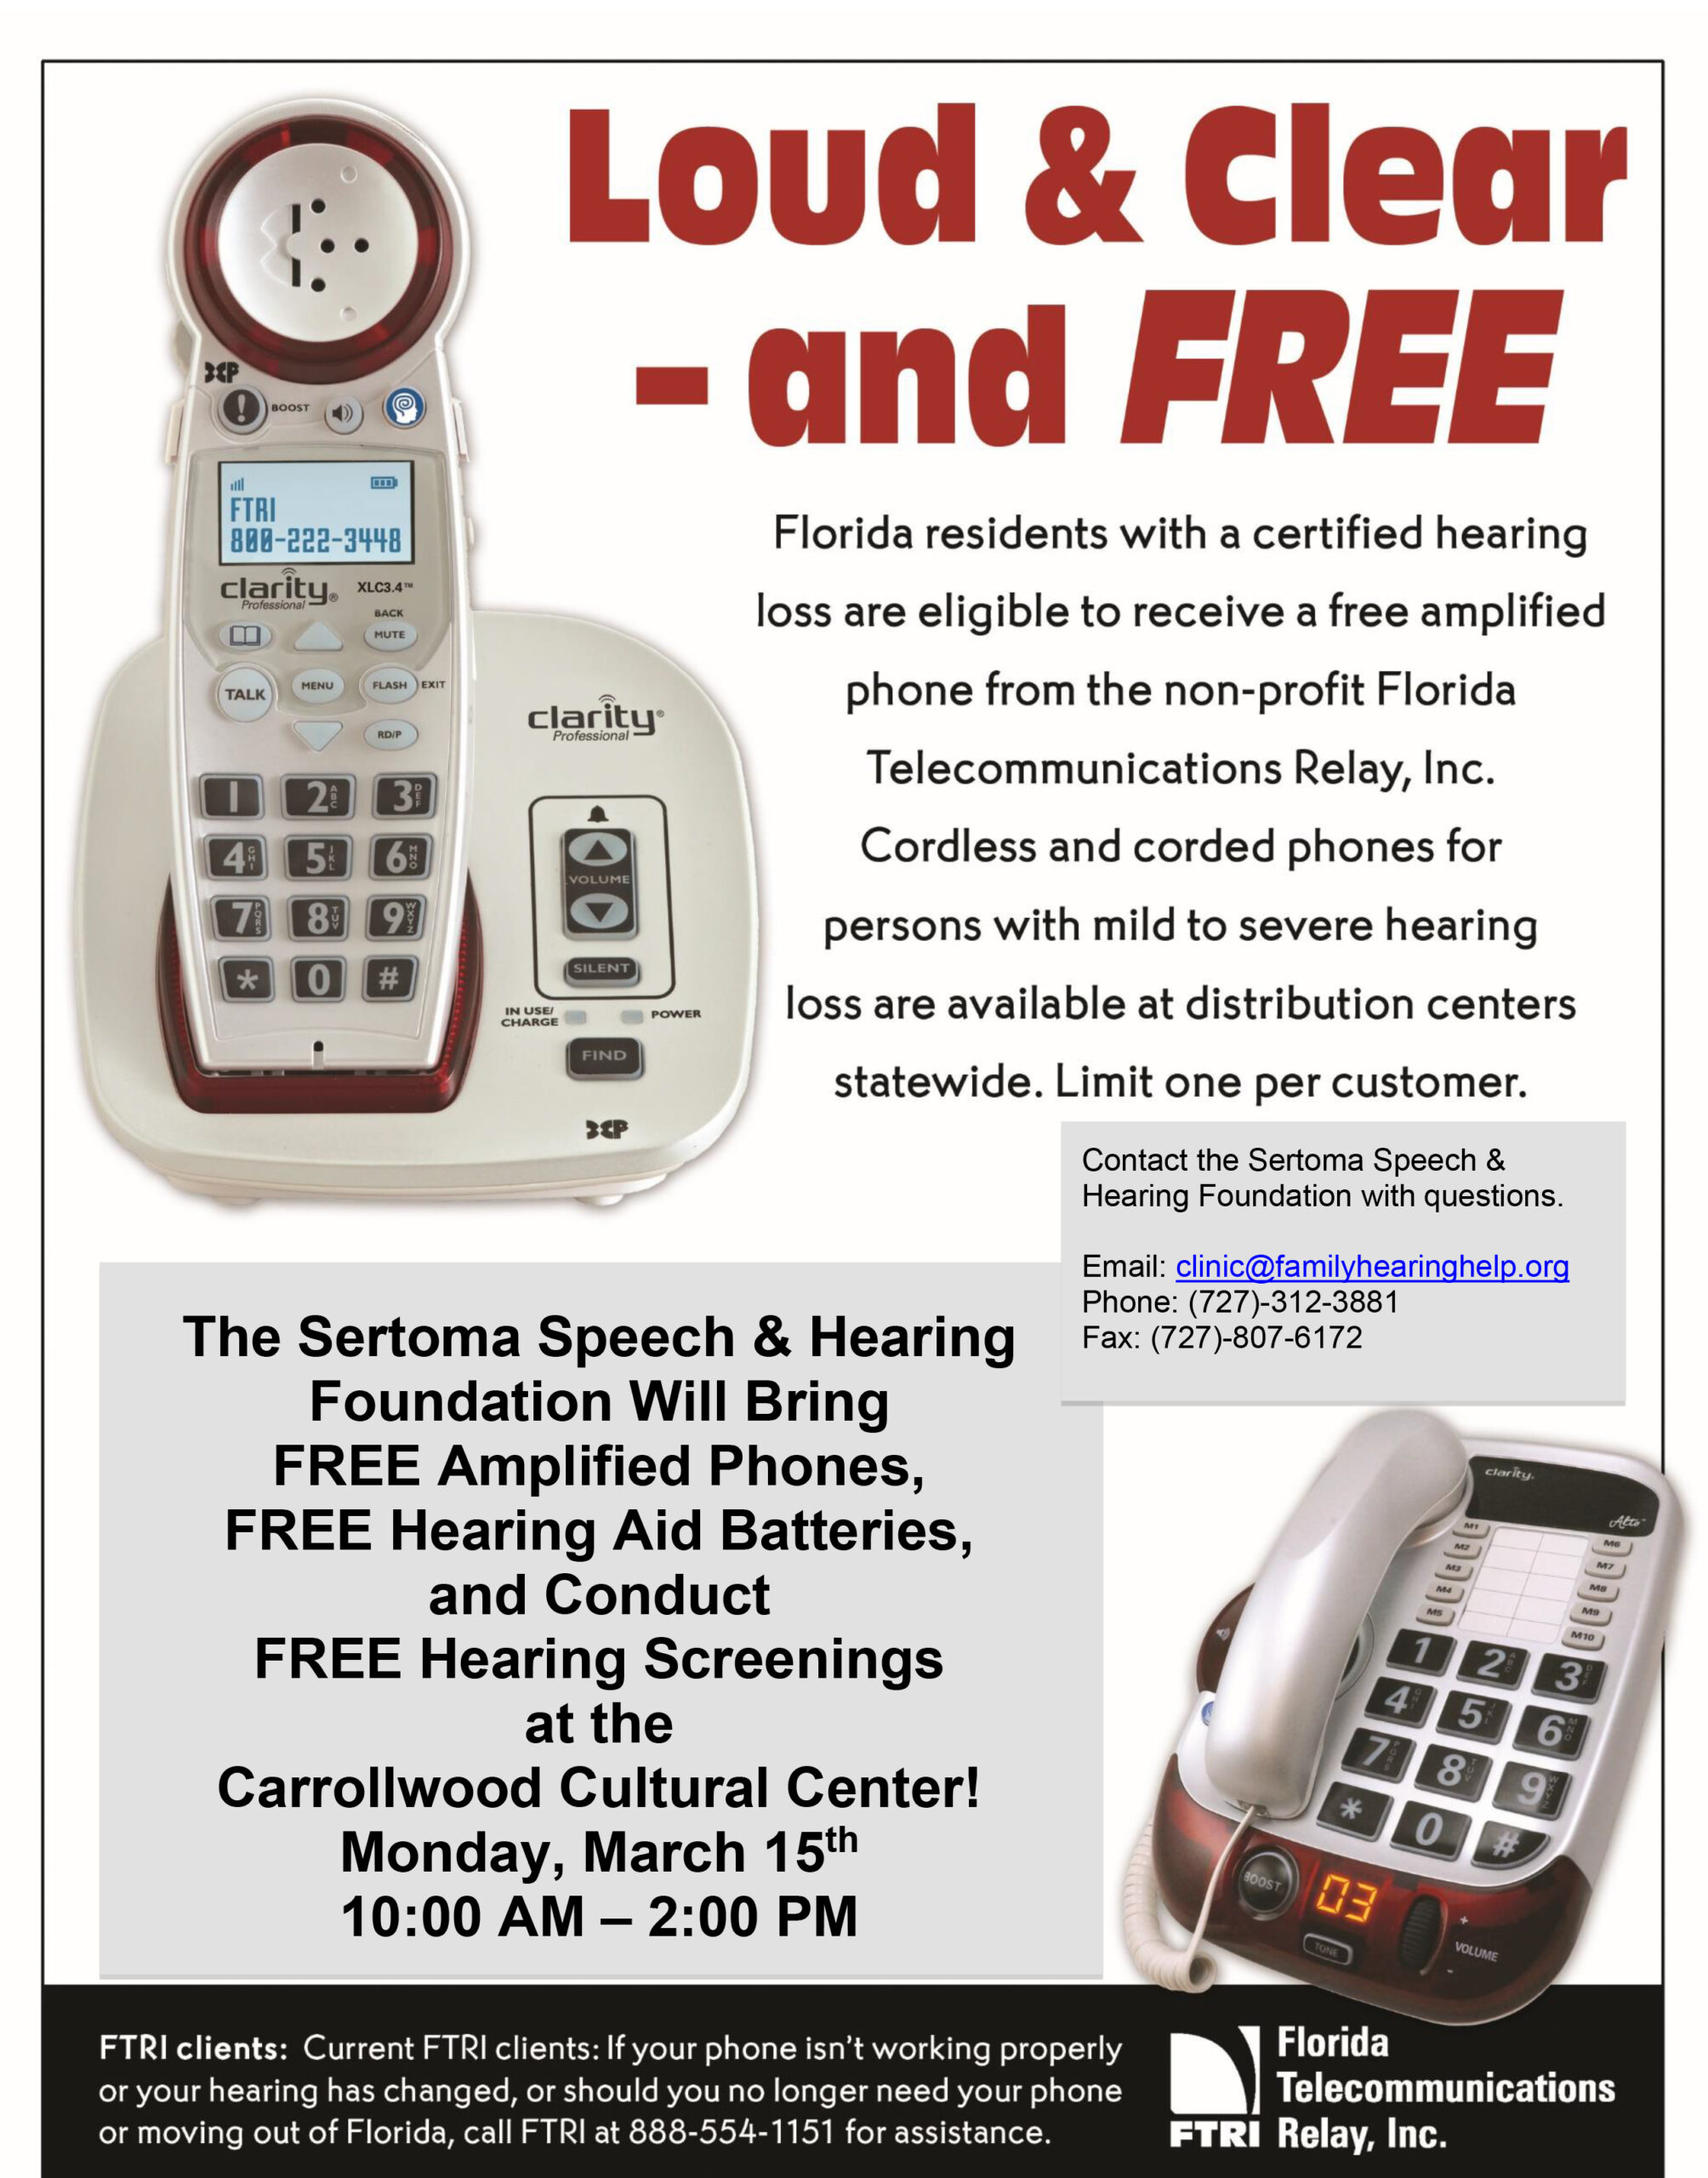 Carrollwood Cultural Center Flyer - Sertoma Speech & Hearing Foundation